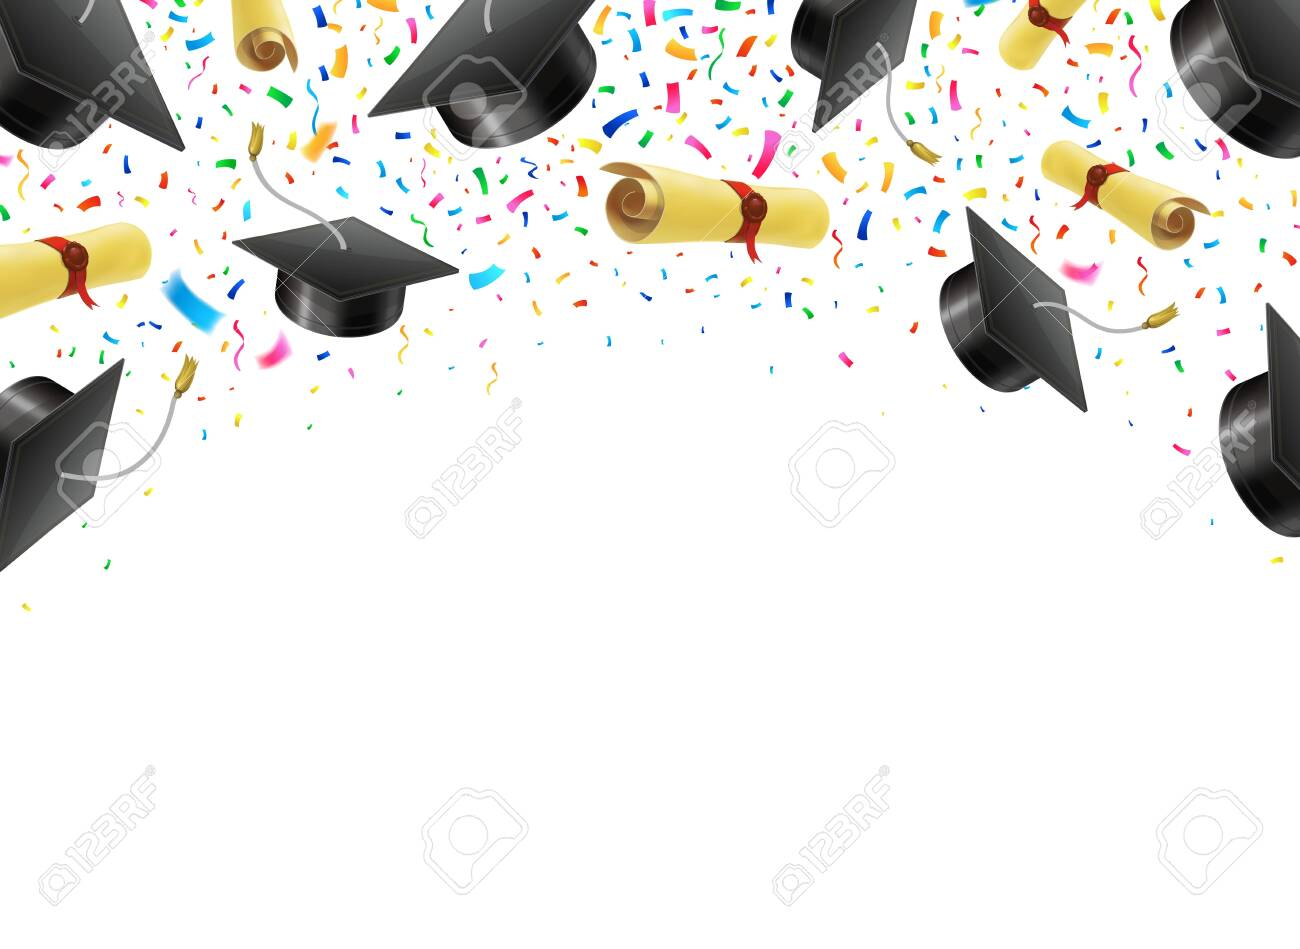 Graduate caps and diplomas flying with multi colored confetti. Academic hats in air with ribbons. - 123408209